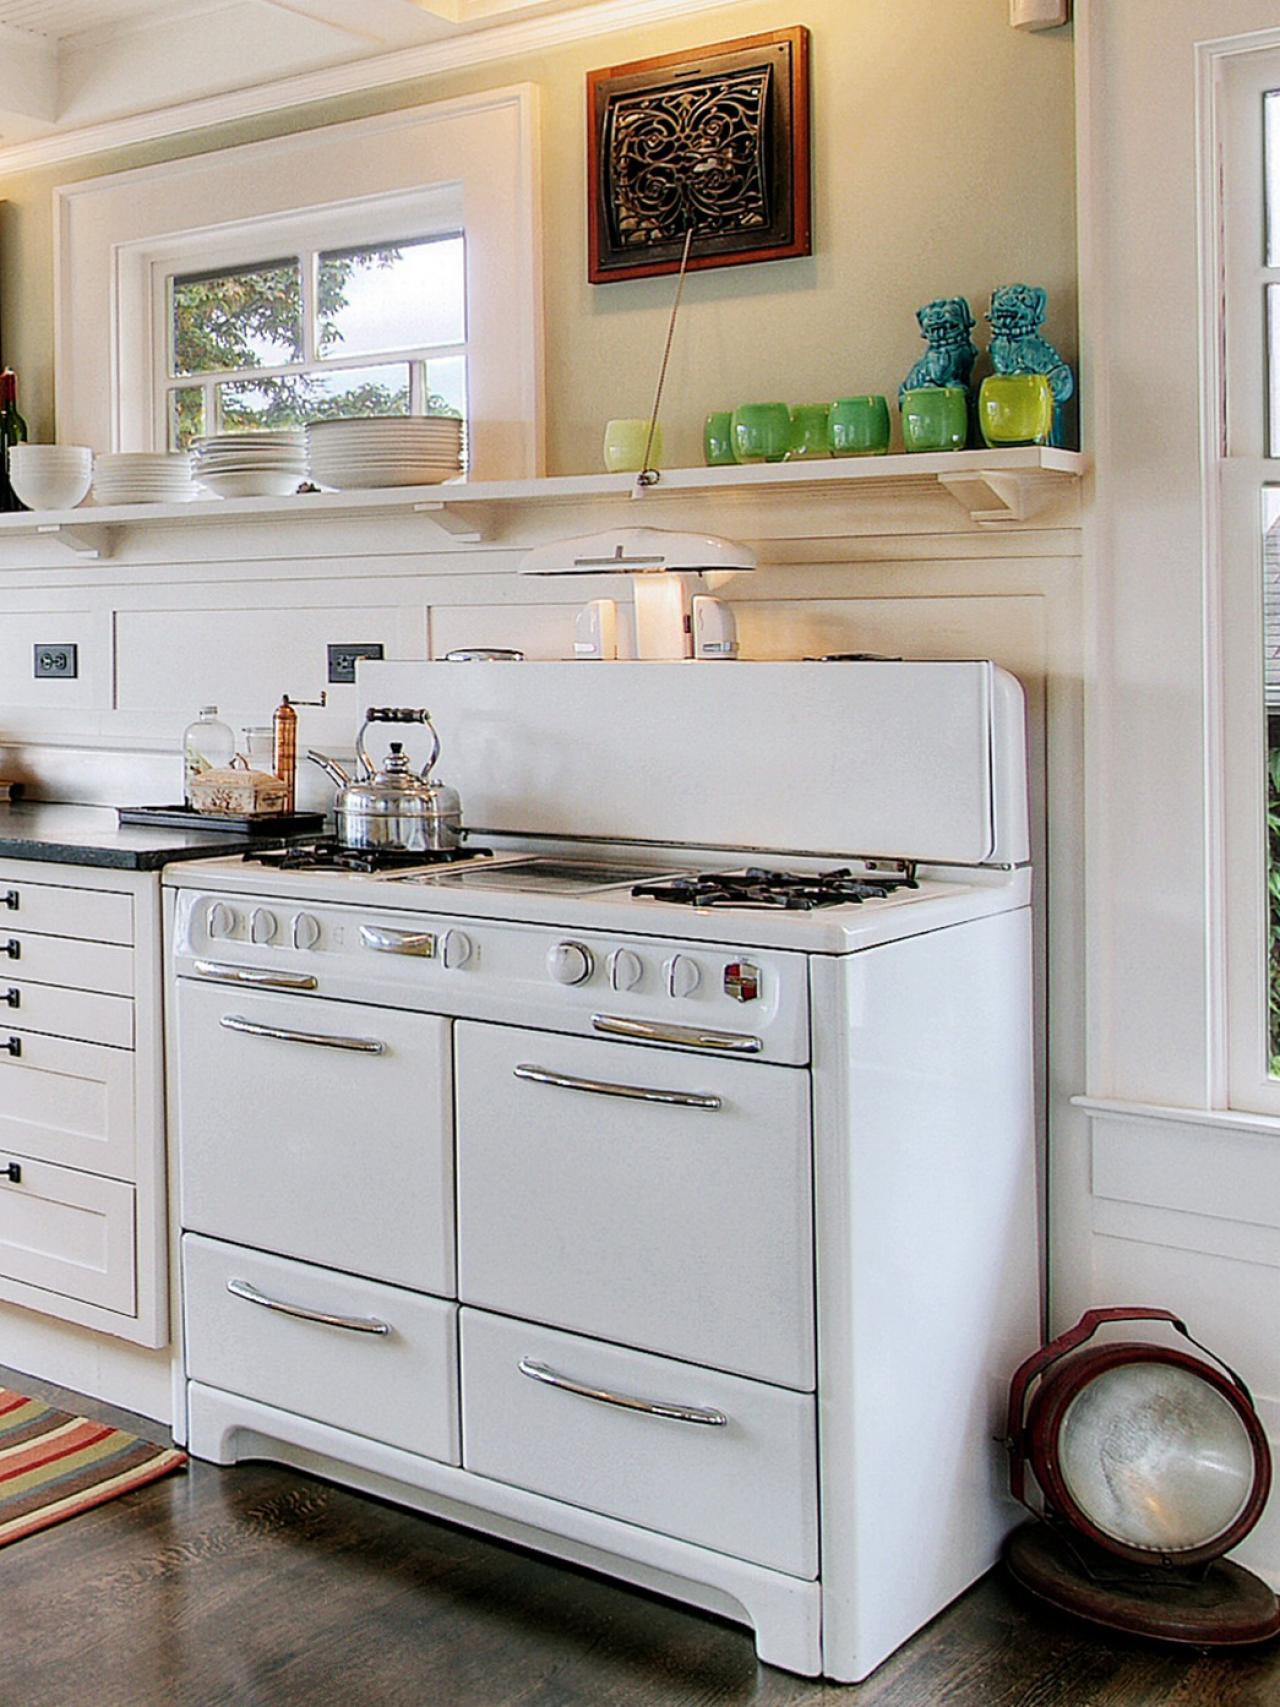 Remodeling Your Kitchen With Salvaged Items Diy